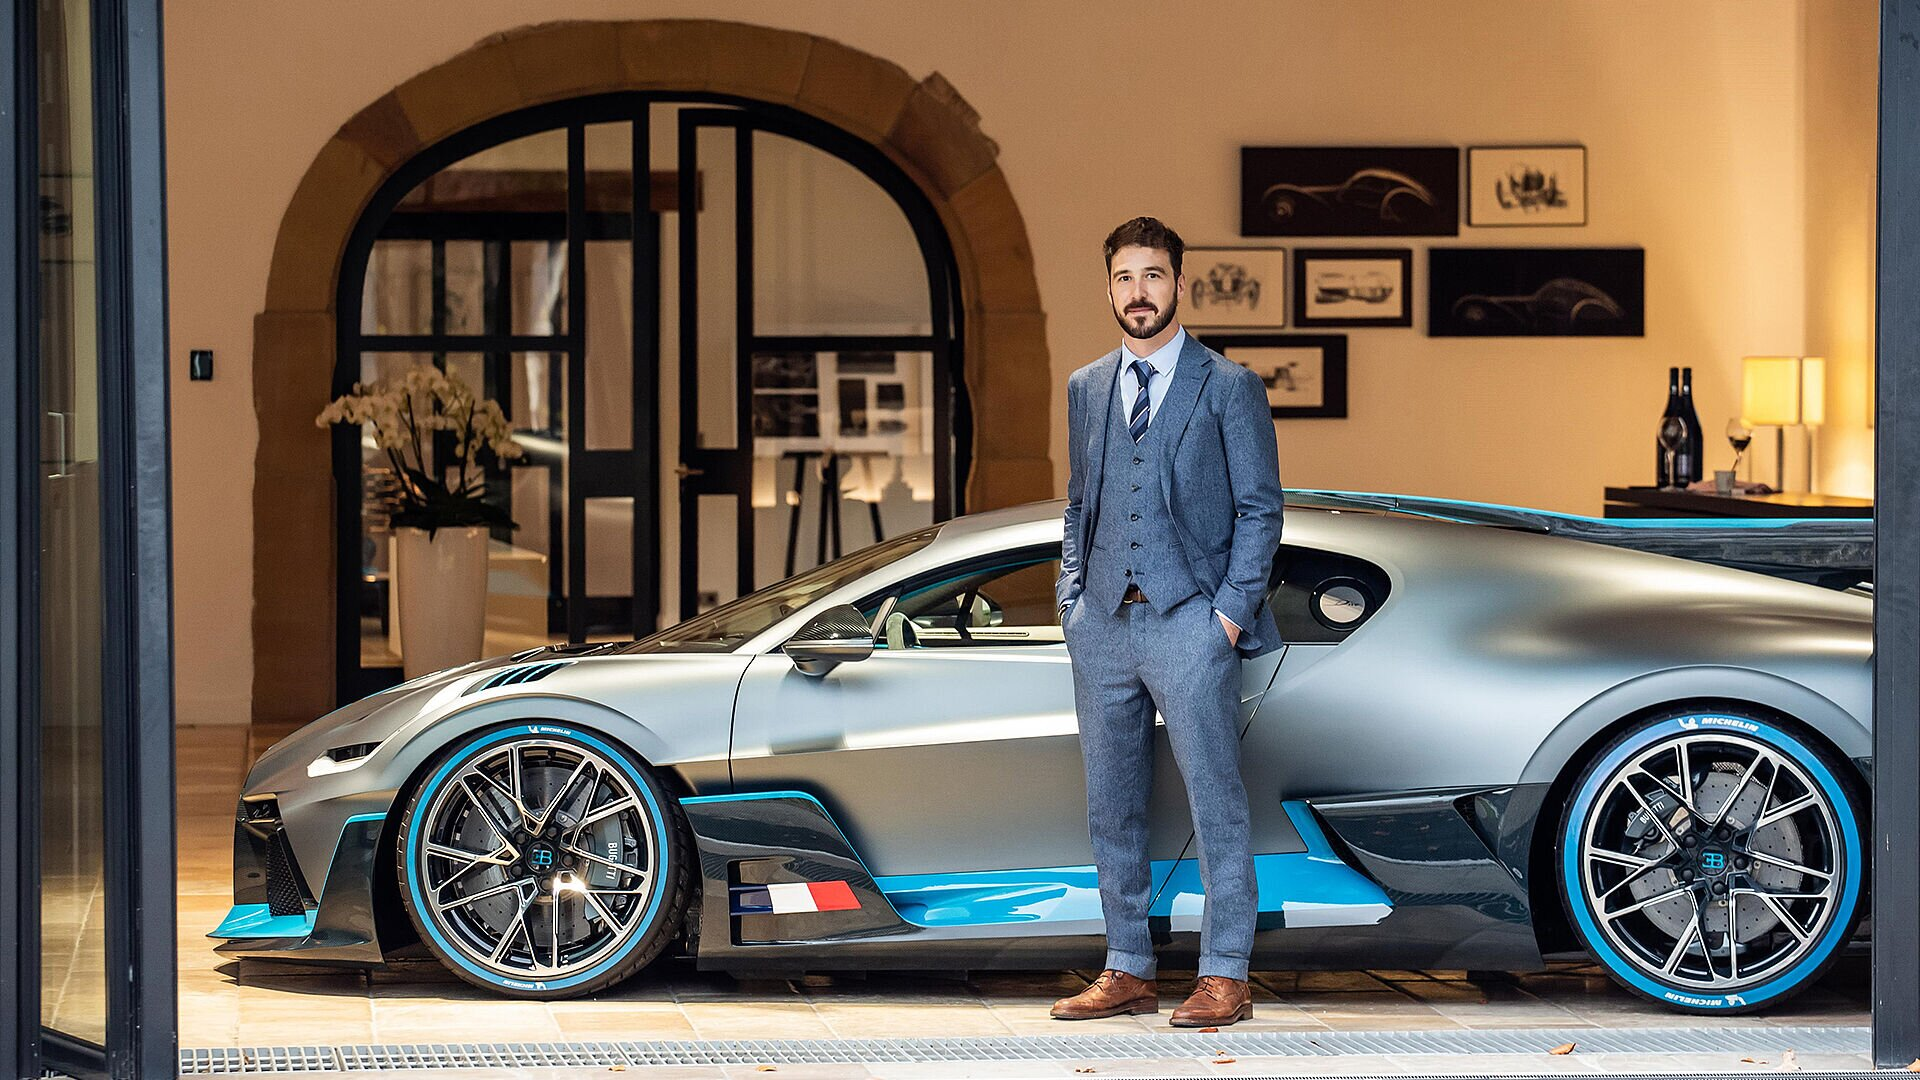 Summer 2019: Paolo Fanucci at the Bugatti headquarters in Molsheim.